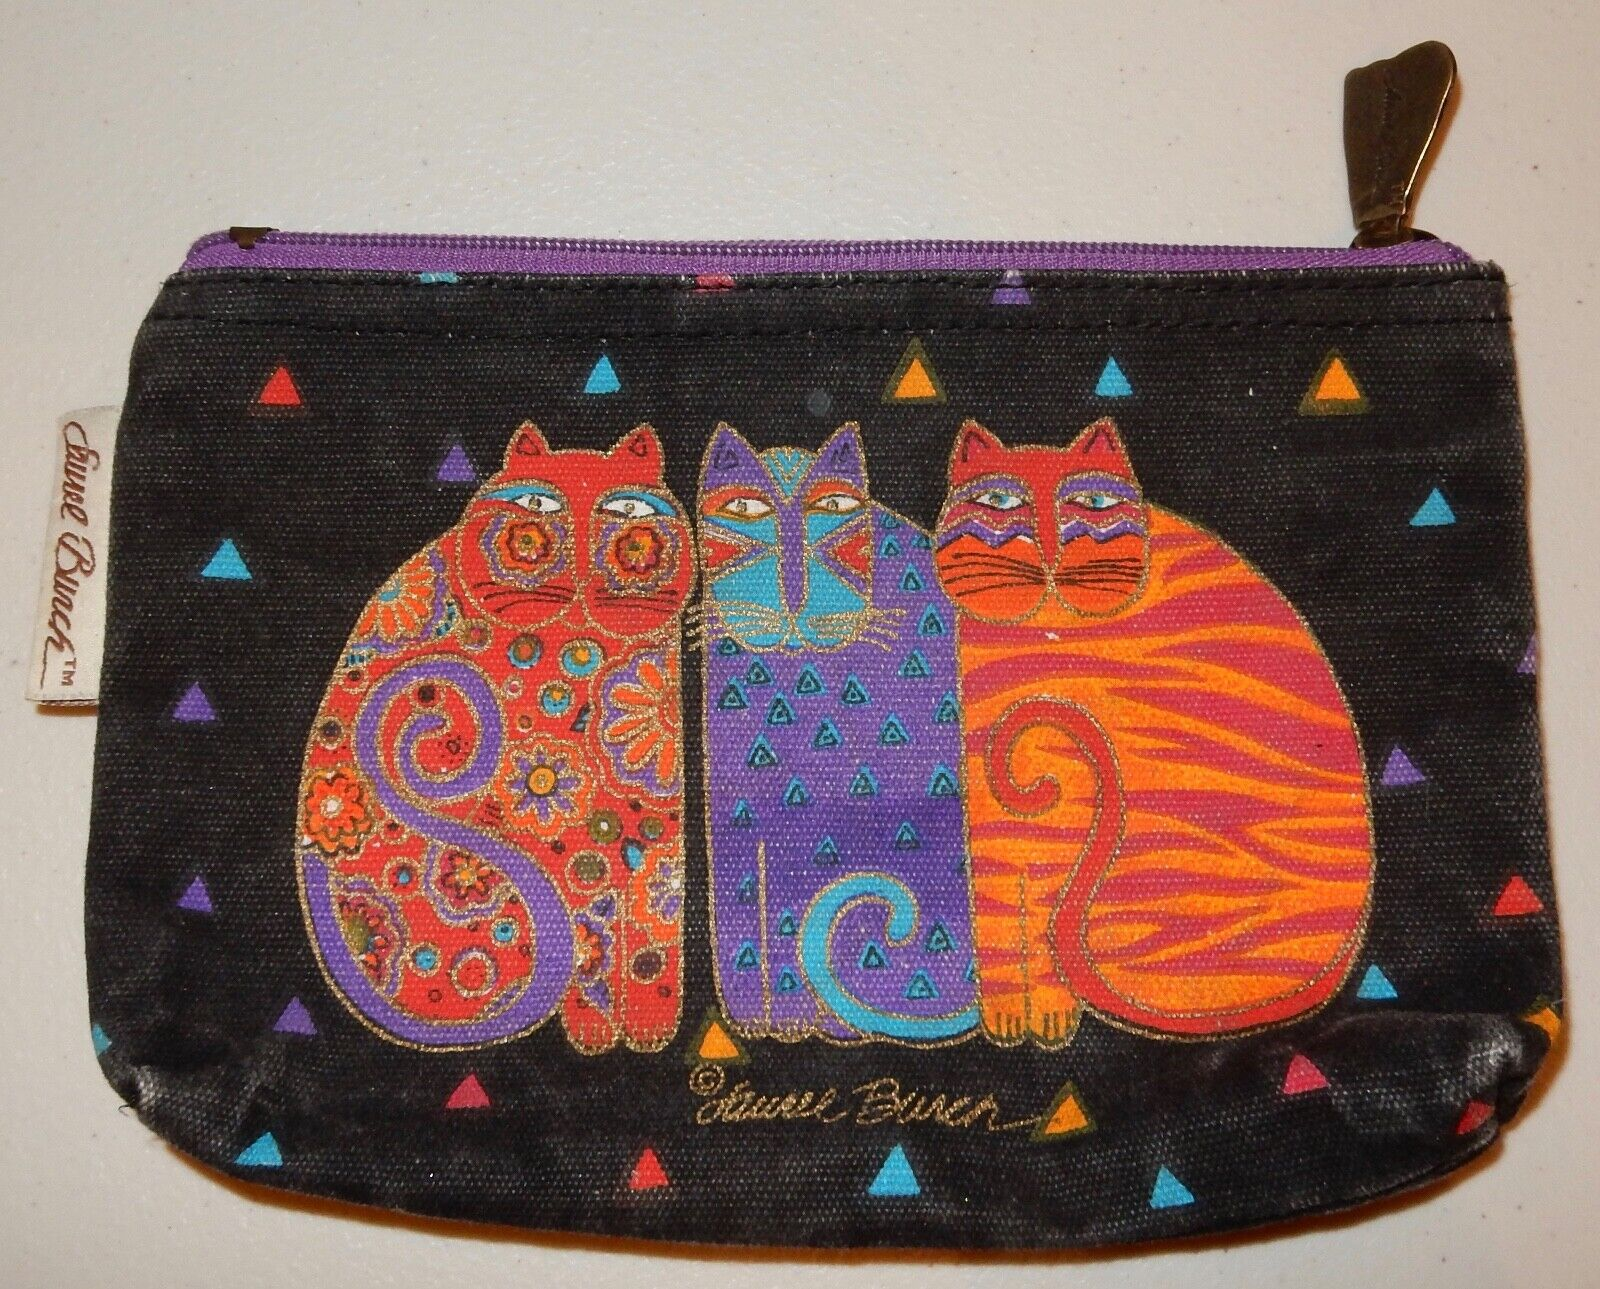 Laurel Burch Cat Tote Bag & Pouch Used - image 2